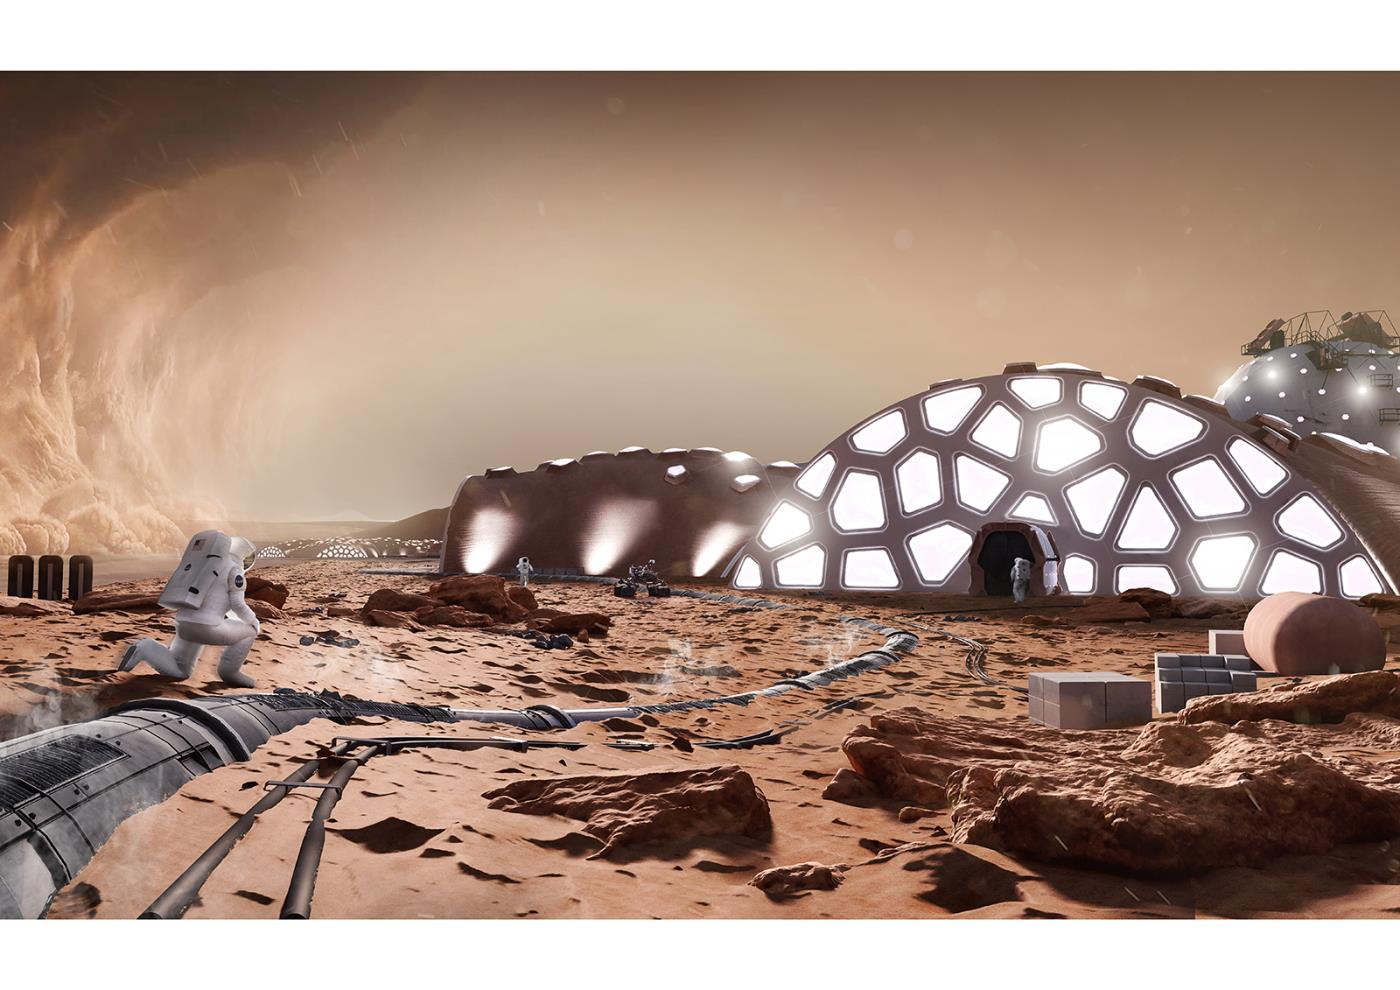 A New Hope - Modular Structures For Habitation On Mars